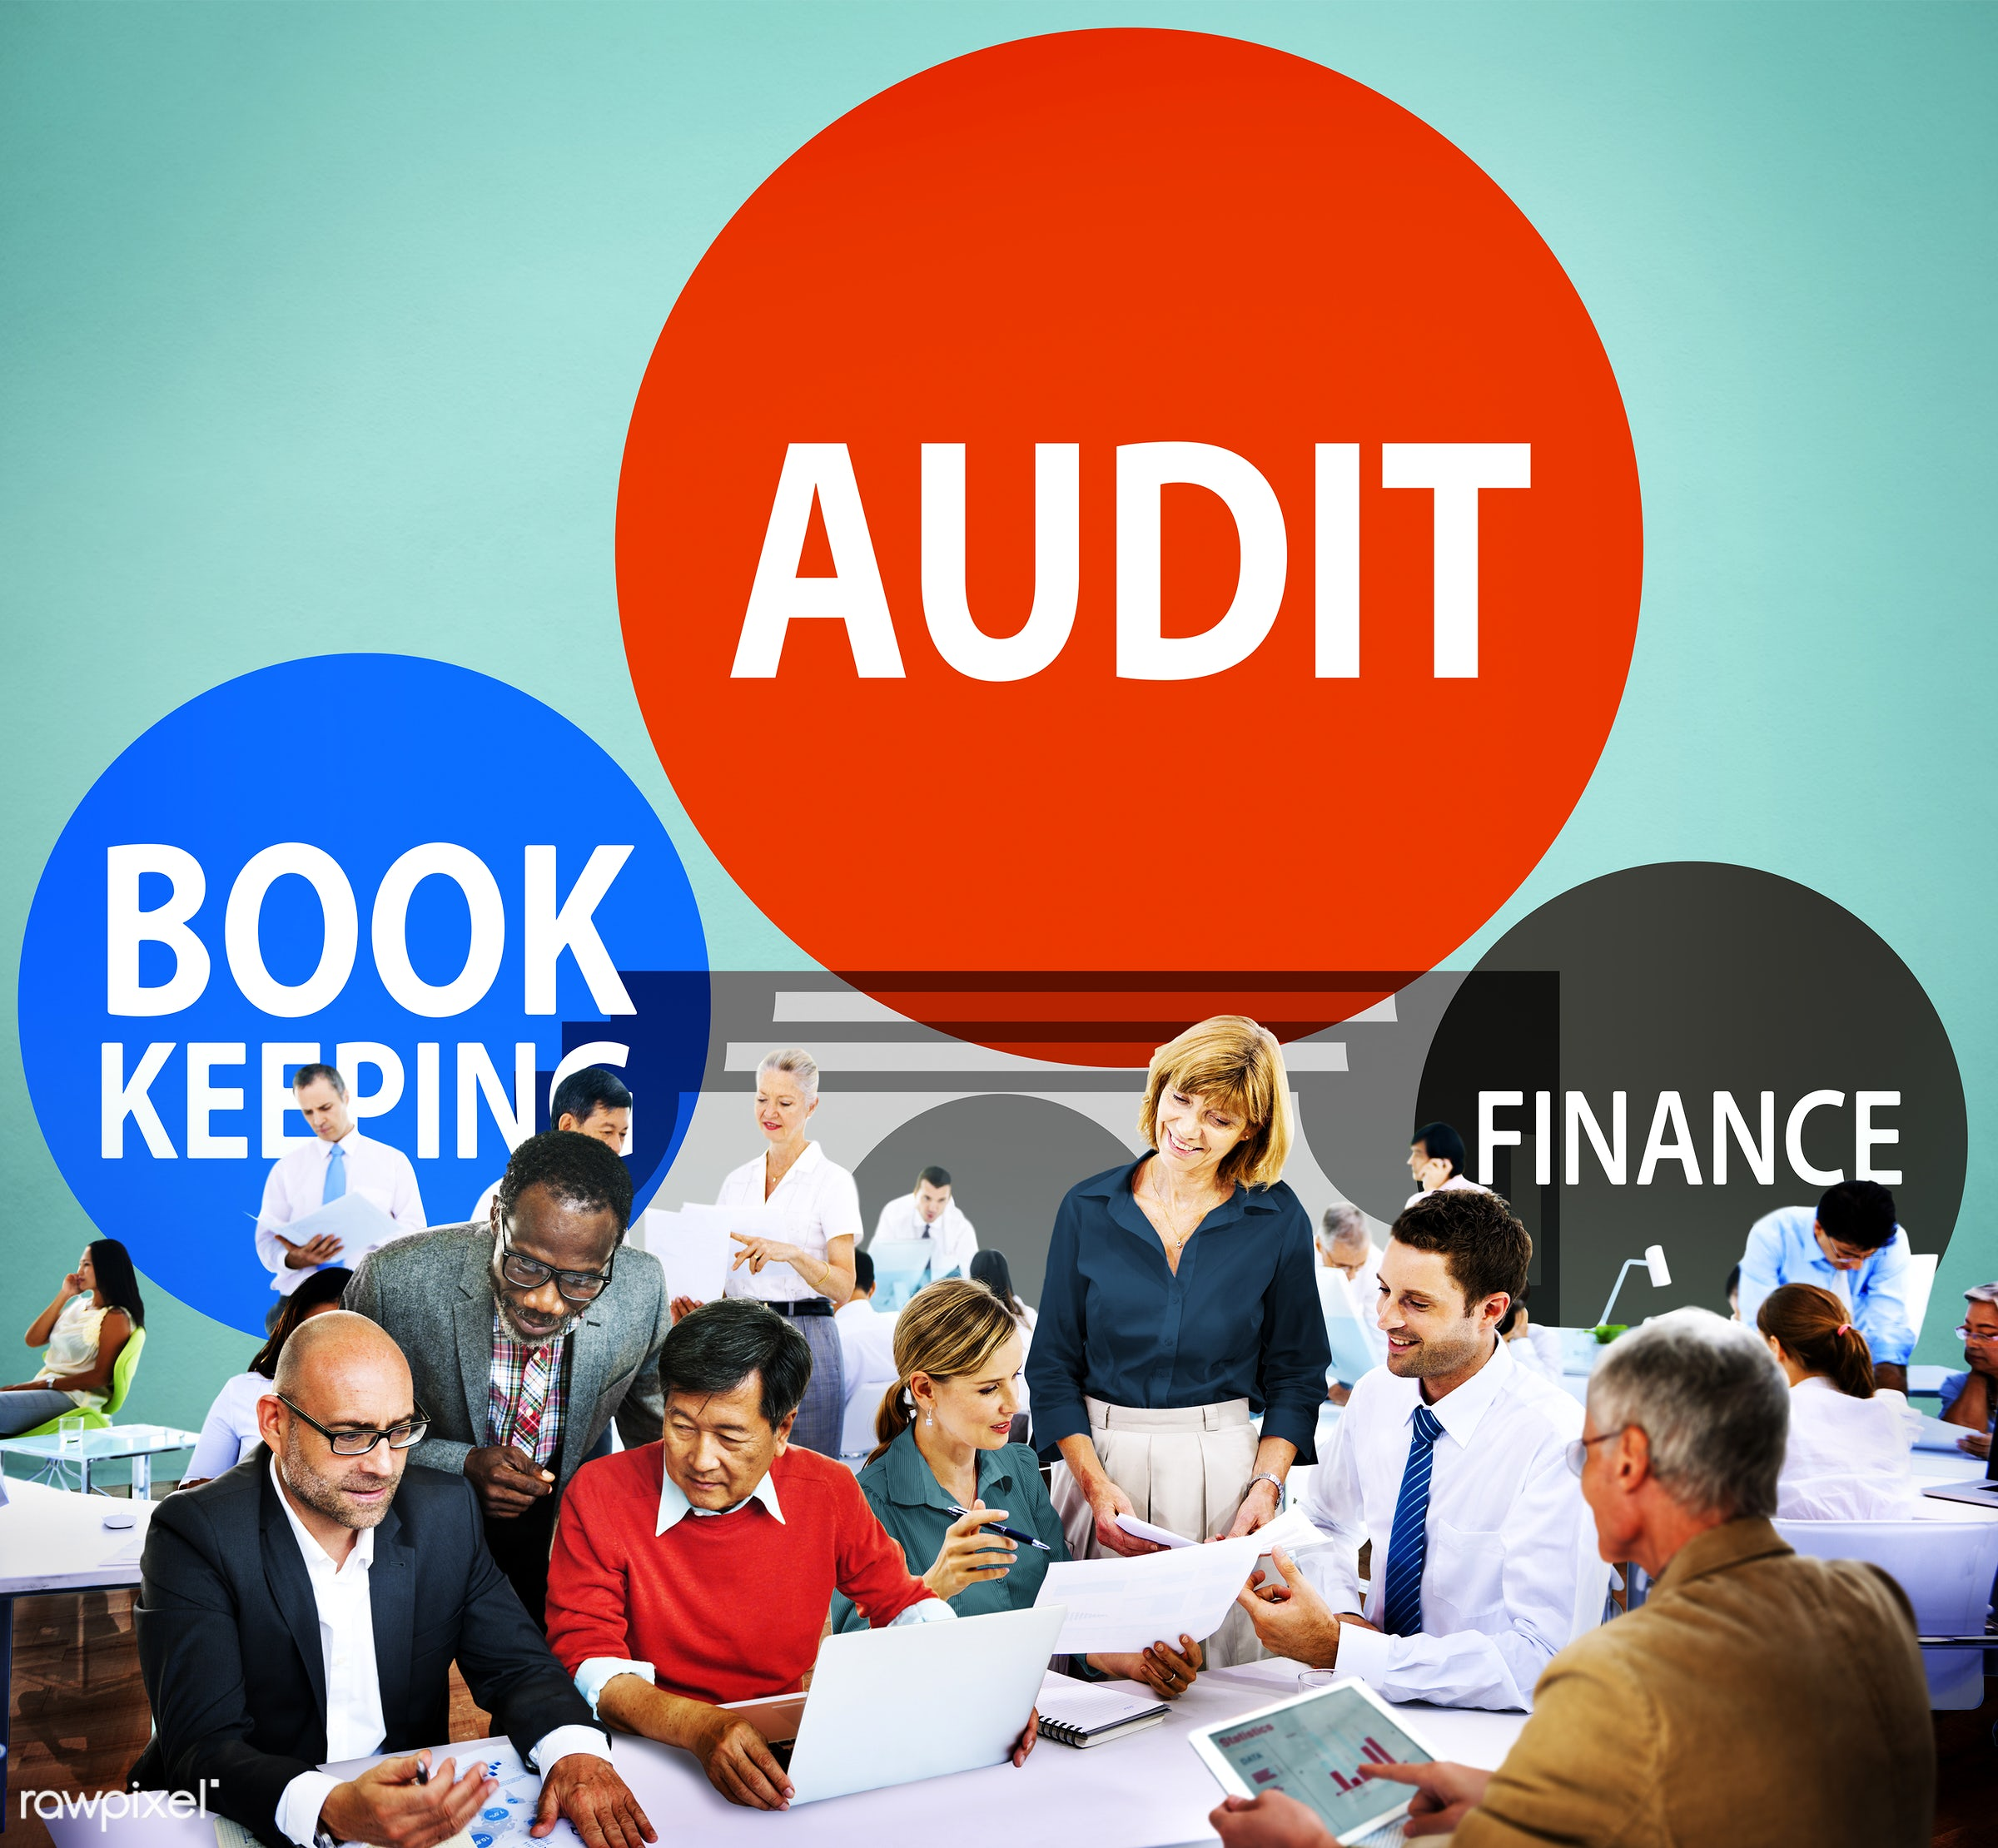 accounting, adherence, analysis, assessment, audit, auditor, bookkeeping, business, business people, businessmen,...